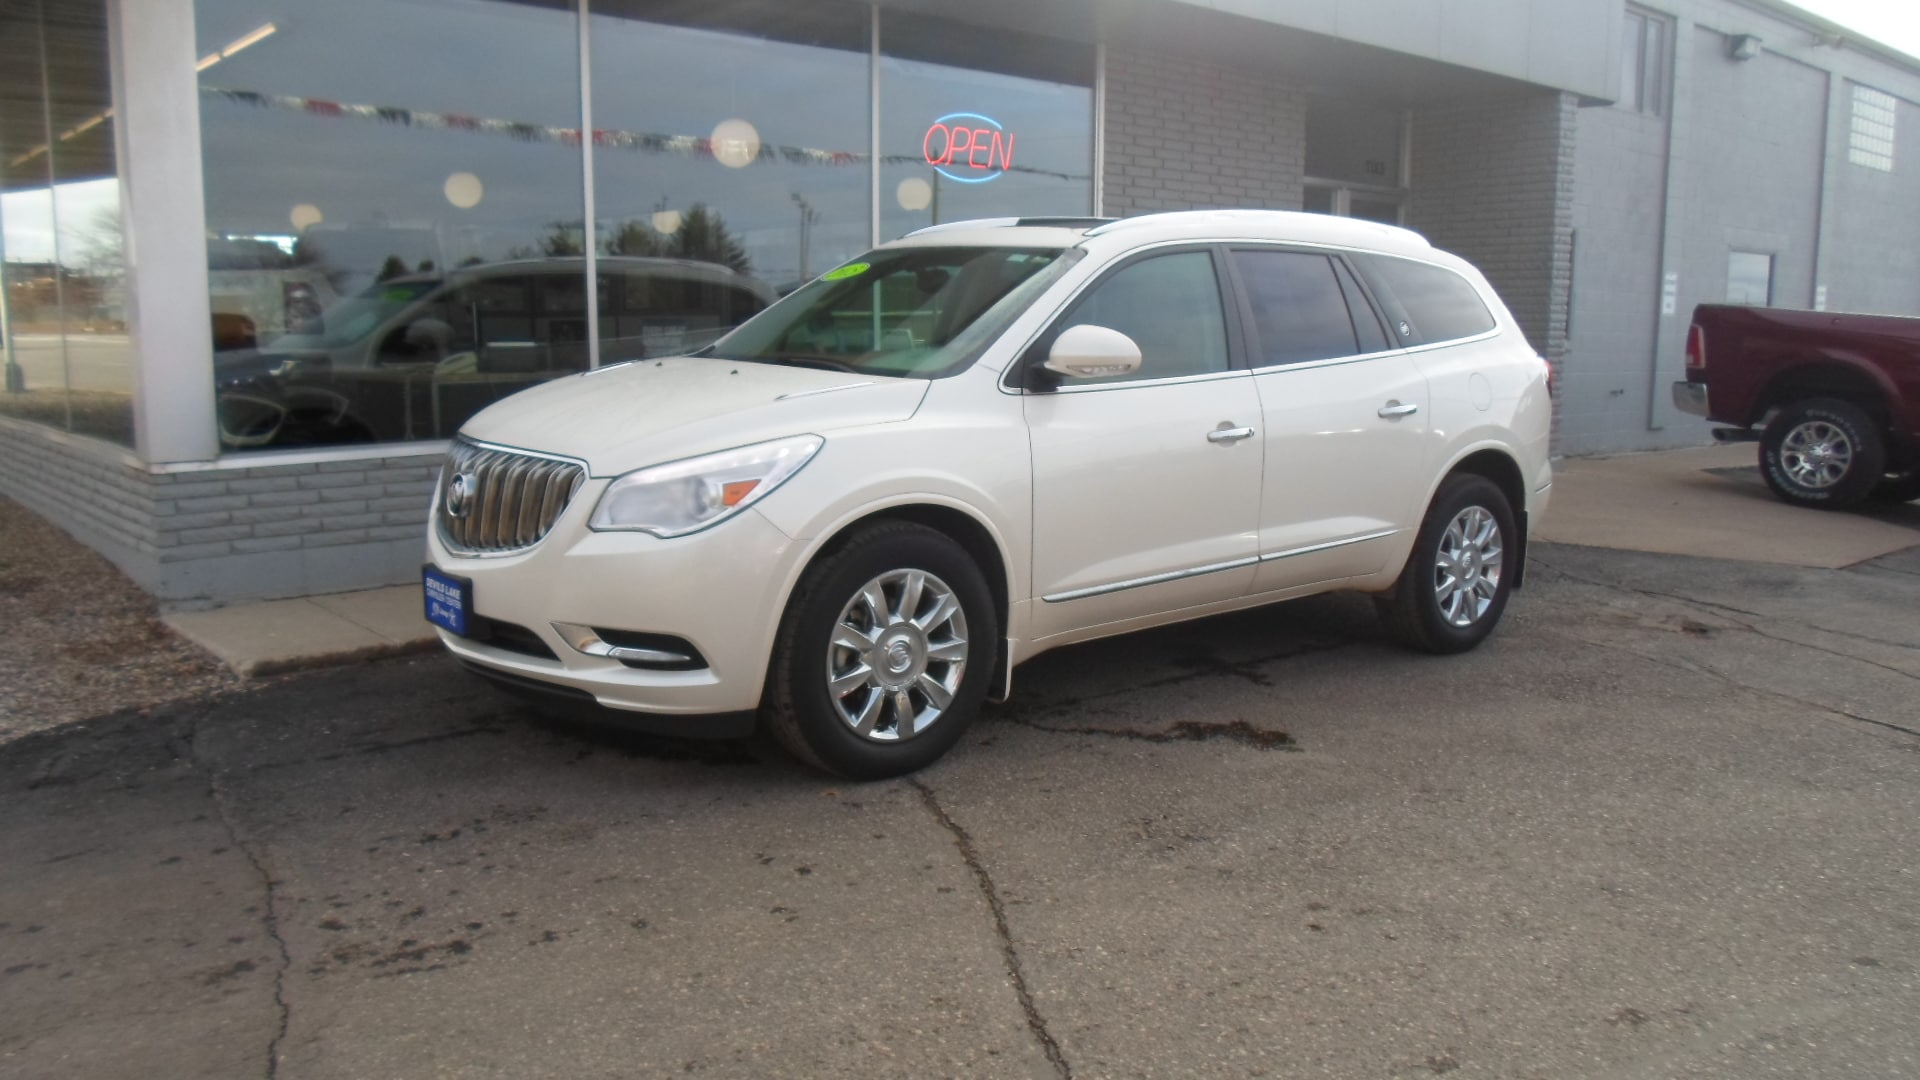 USed 2015 Buick Enclave for sale in Devils Lake